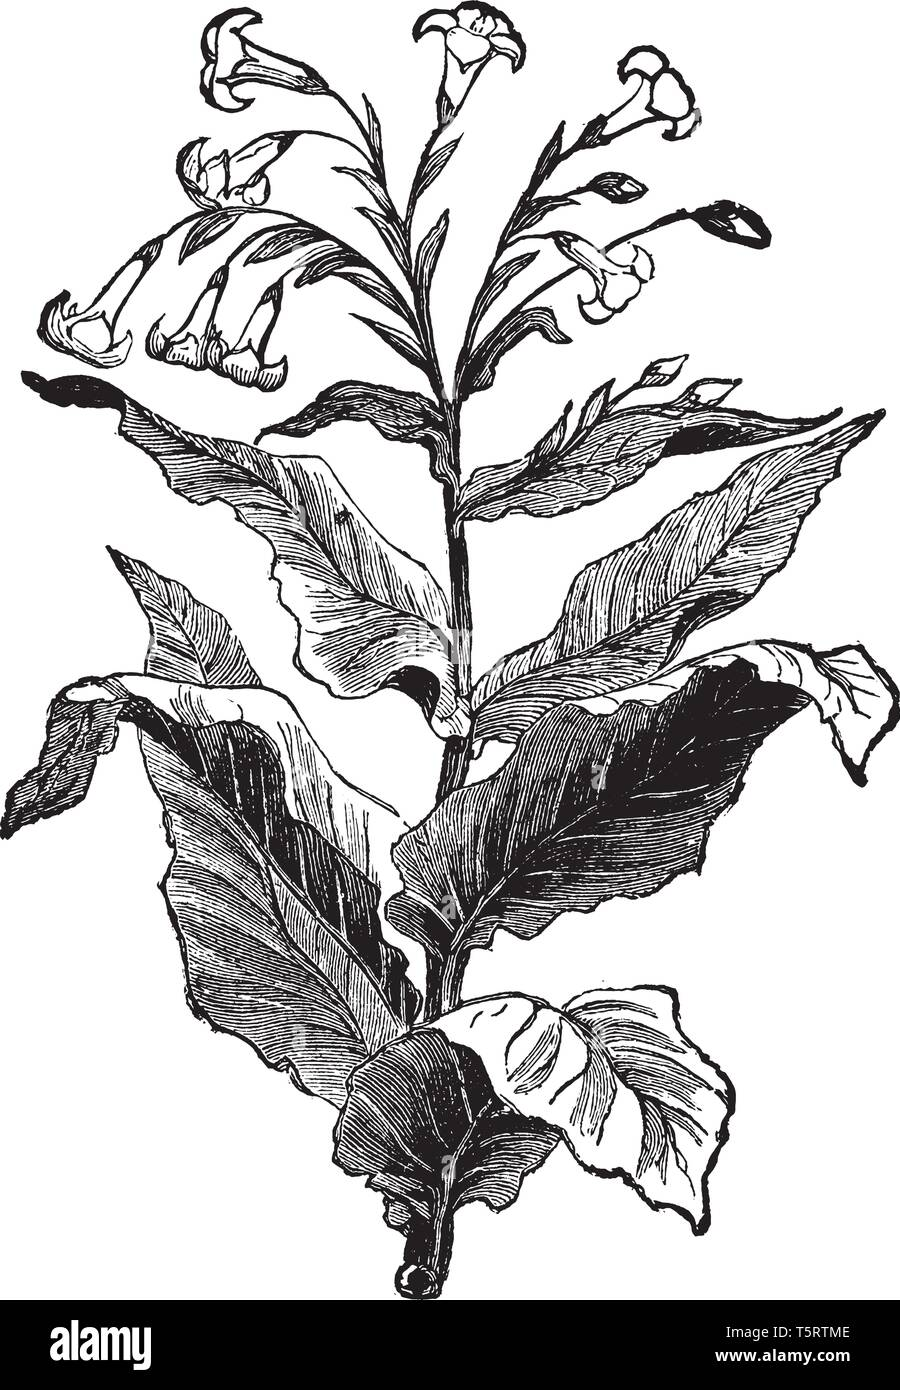 This is the Tobacco plant. The Tobacco plant leaves are alternative and long. The flowers are blooms on top of the stem, vintage line drawing or engra - Stock Vector